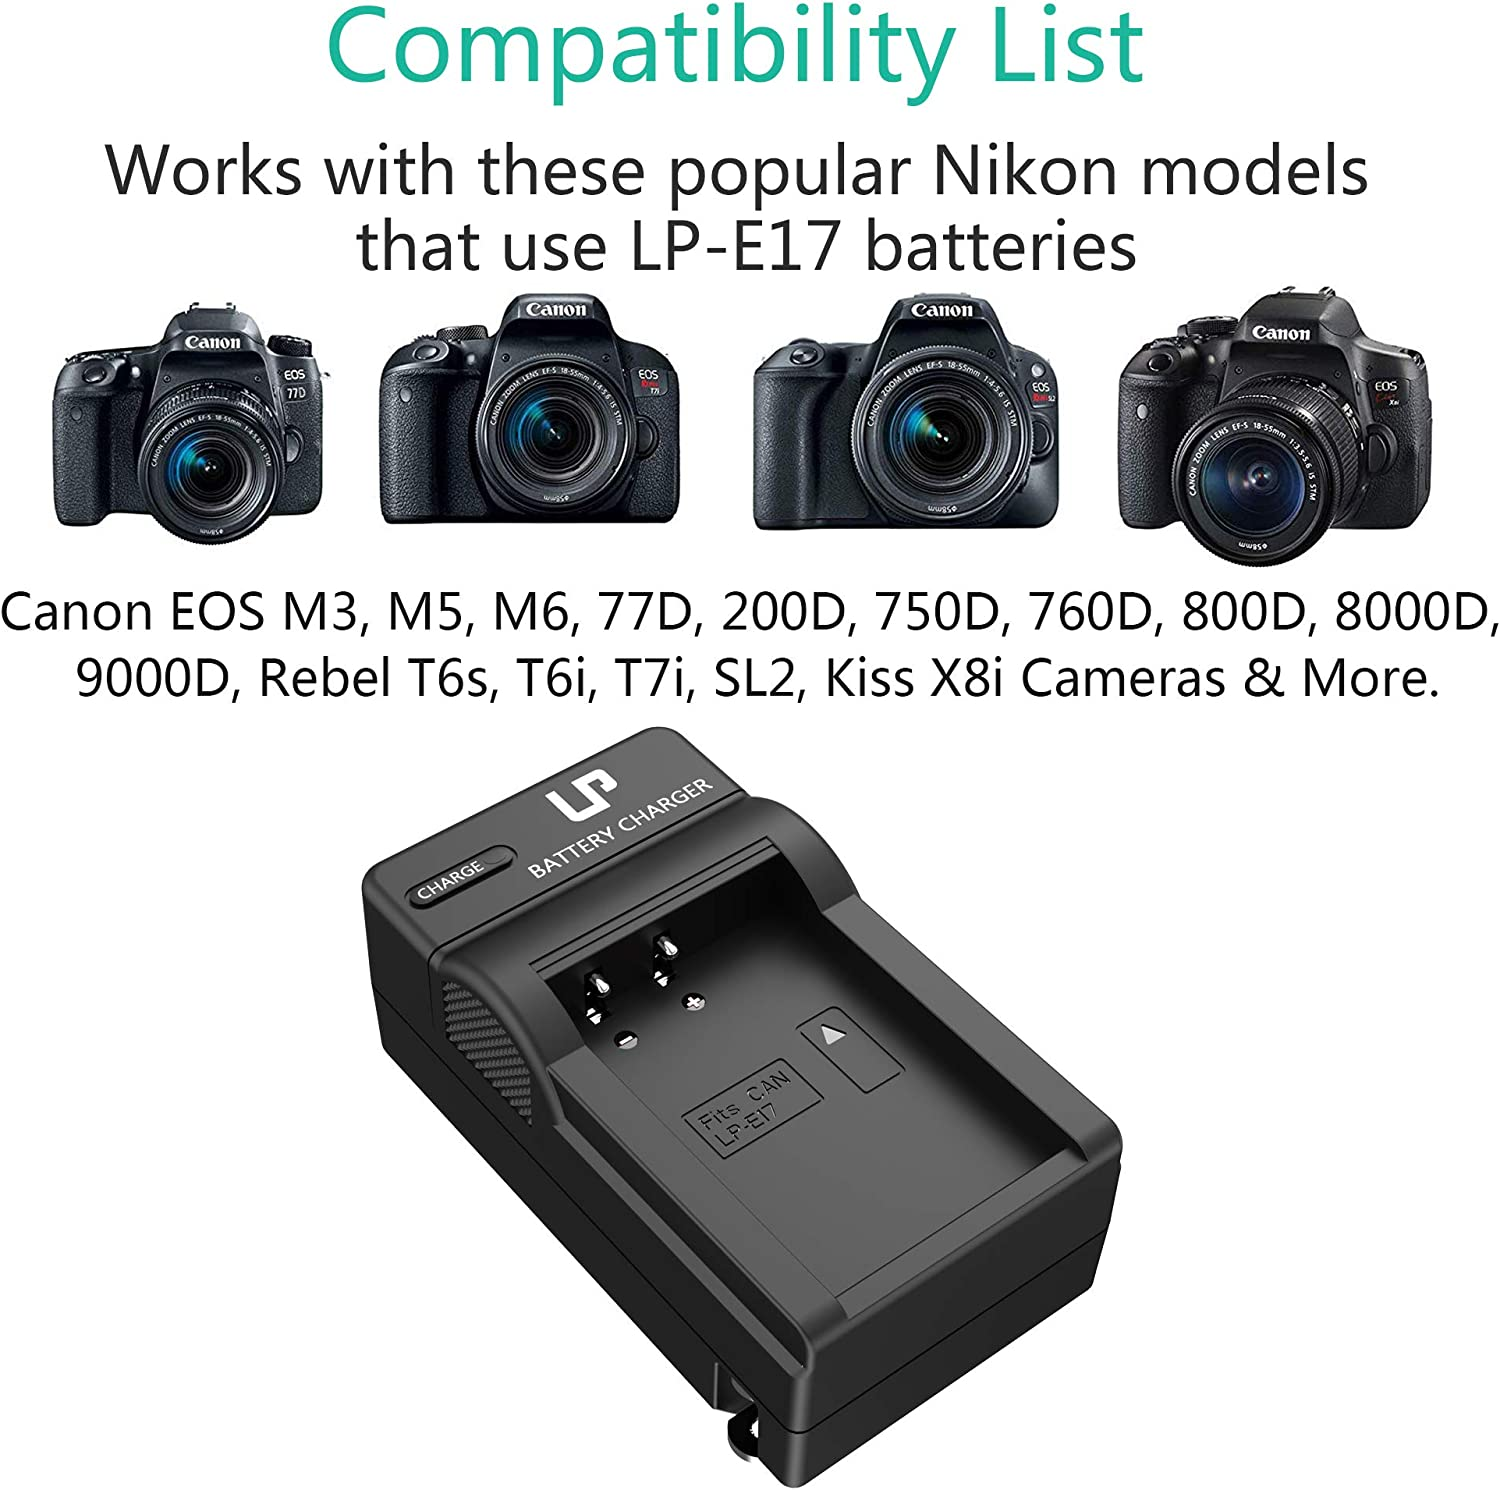 LP LP-E17 Battery Charger, Compatible with Canon EOS Rebel T7i, T6i, T6s, SL3, SL2, 77D, 9000D, 8000D, 800D, 760D, 750D, 200D, M6, M5, M3, Kiss X8i ...